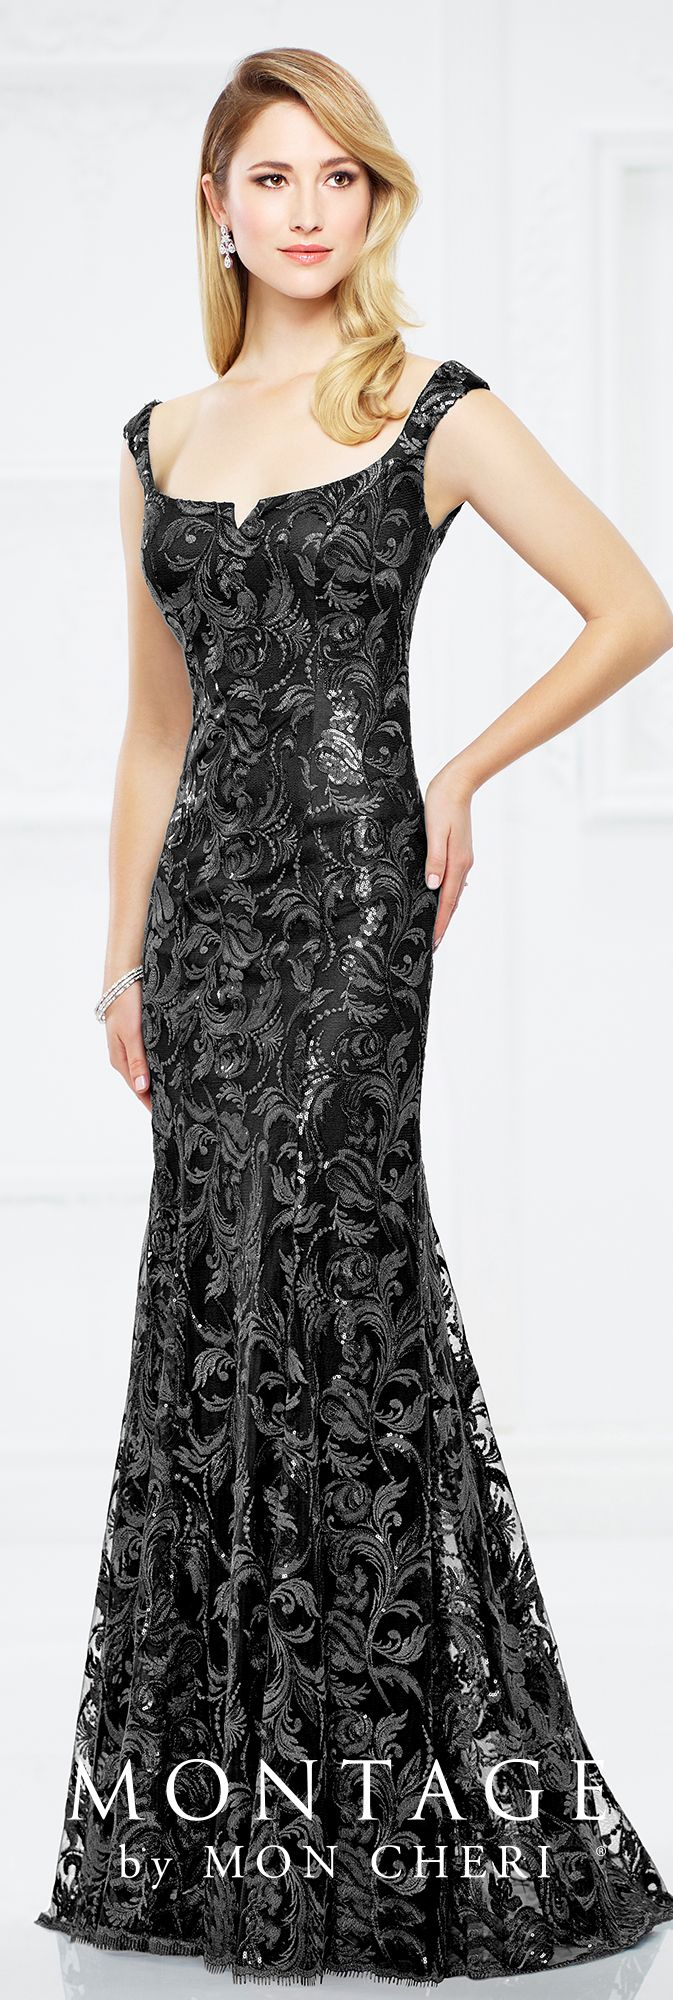 Formal Evening Gowns by Mon Cheri - Fall 2017 - Style No. 217943 - black sequin fit and flare evening dress with slight cap sleeves